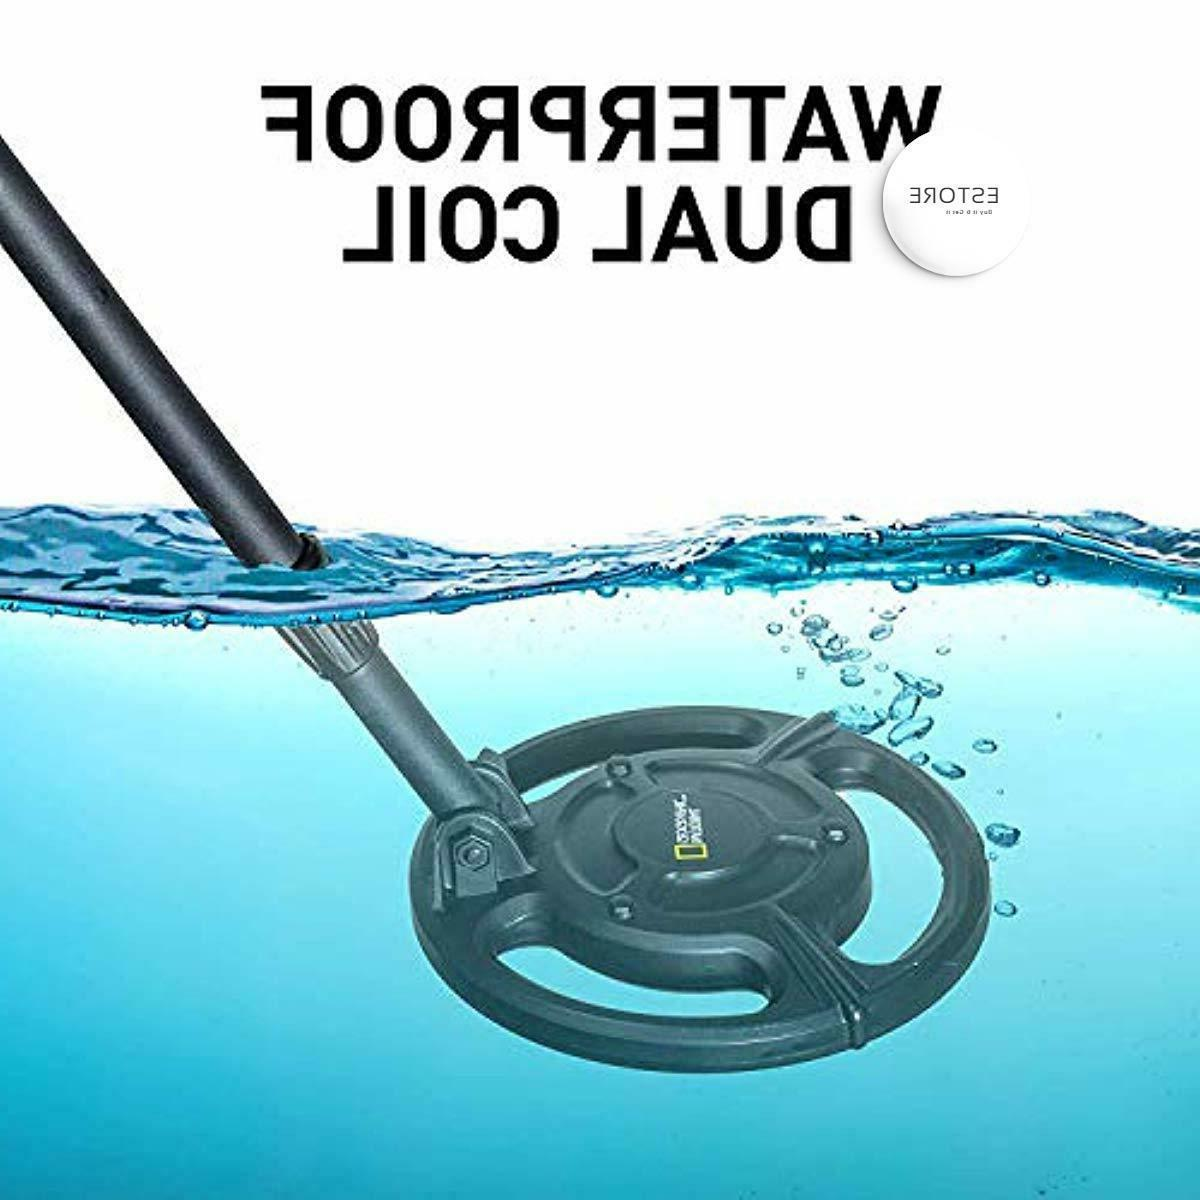 Metal Detector for Great gift.